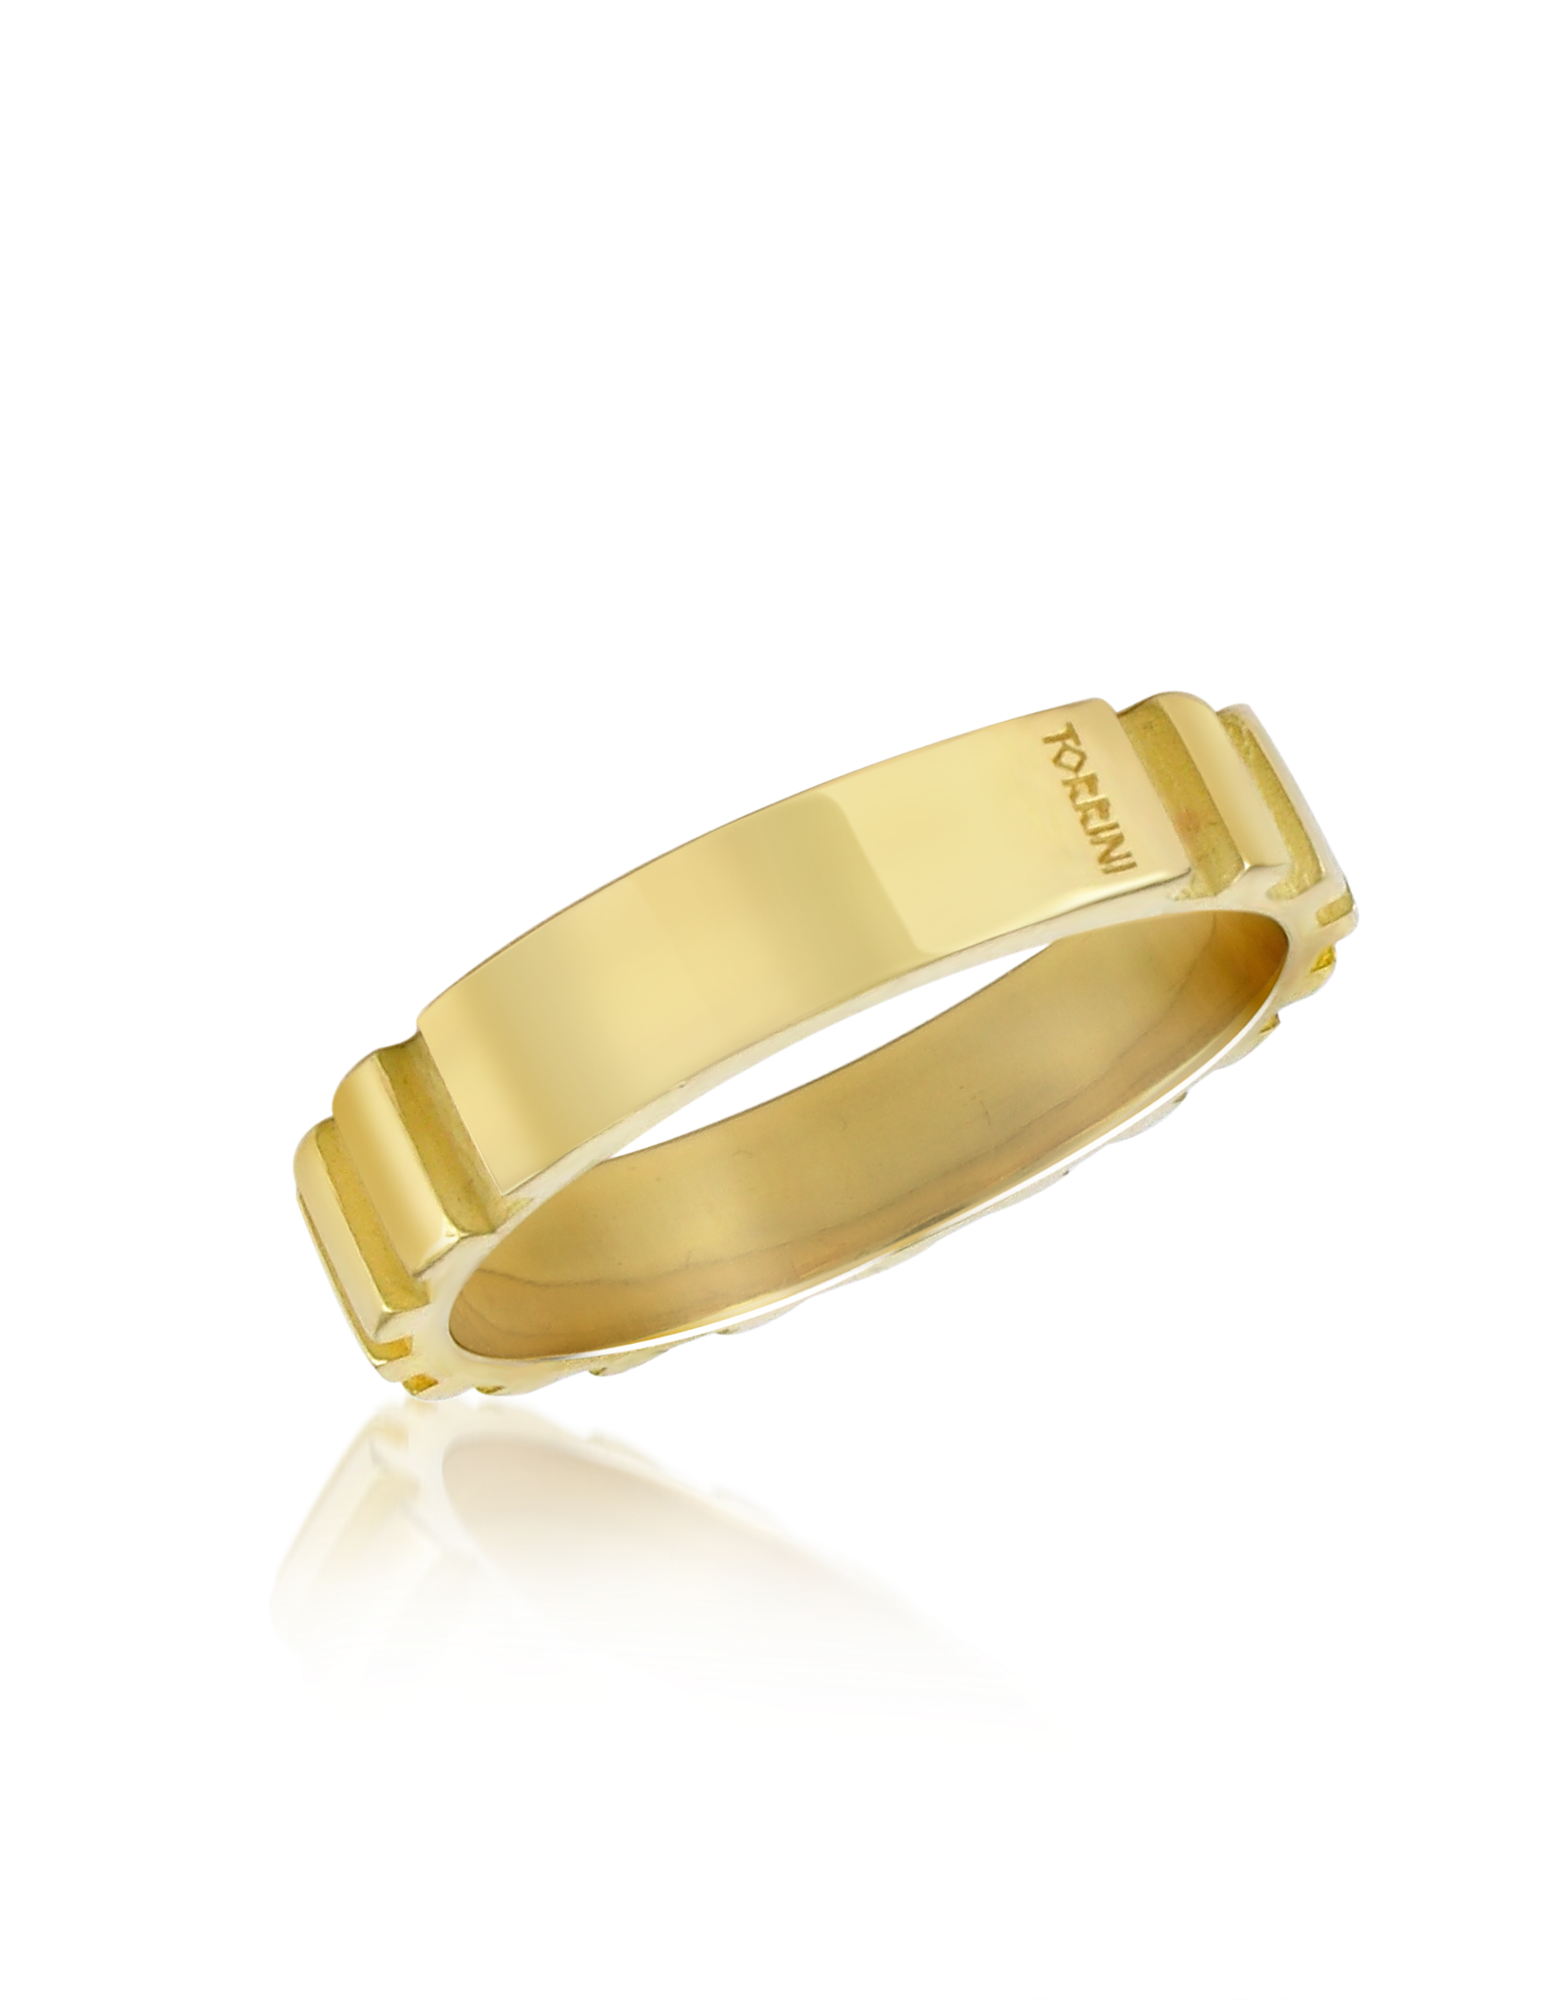 Image of Stripes - 18k Yellow Gold Band Ring